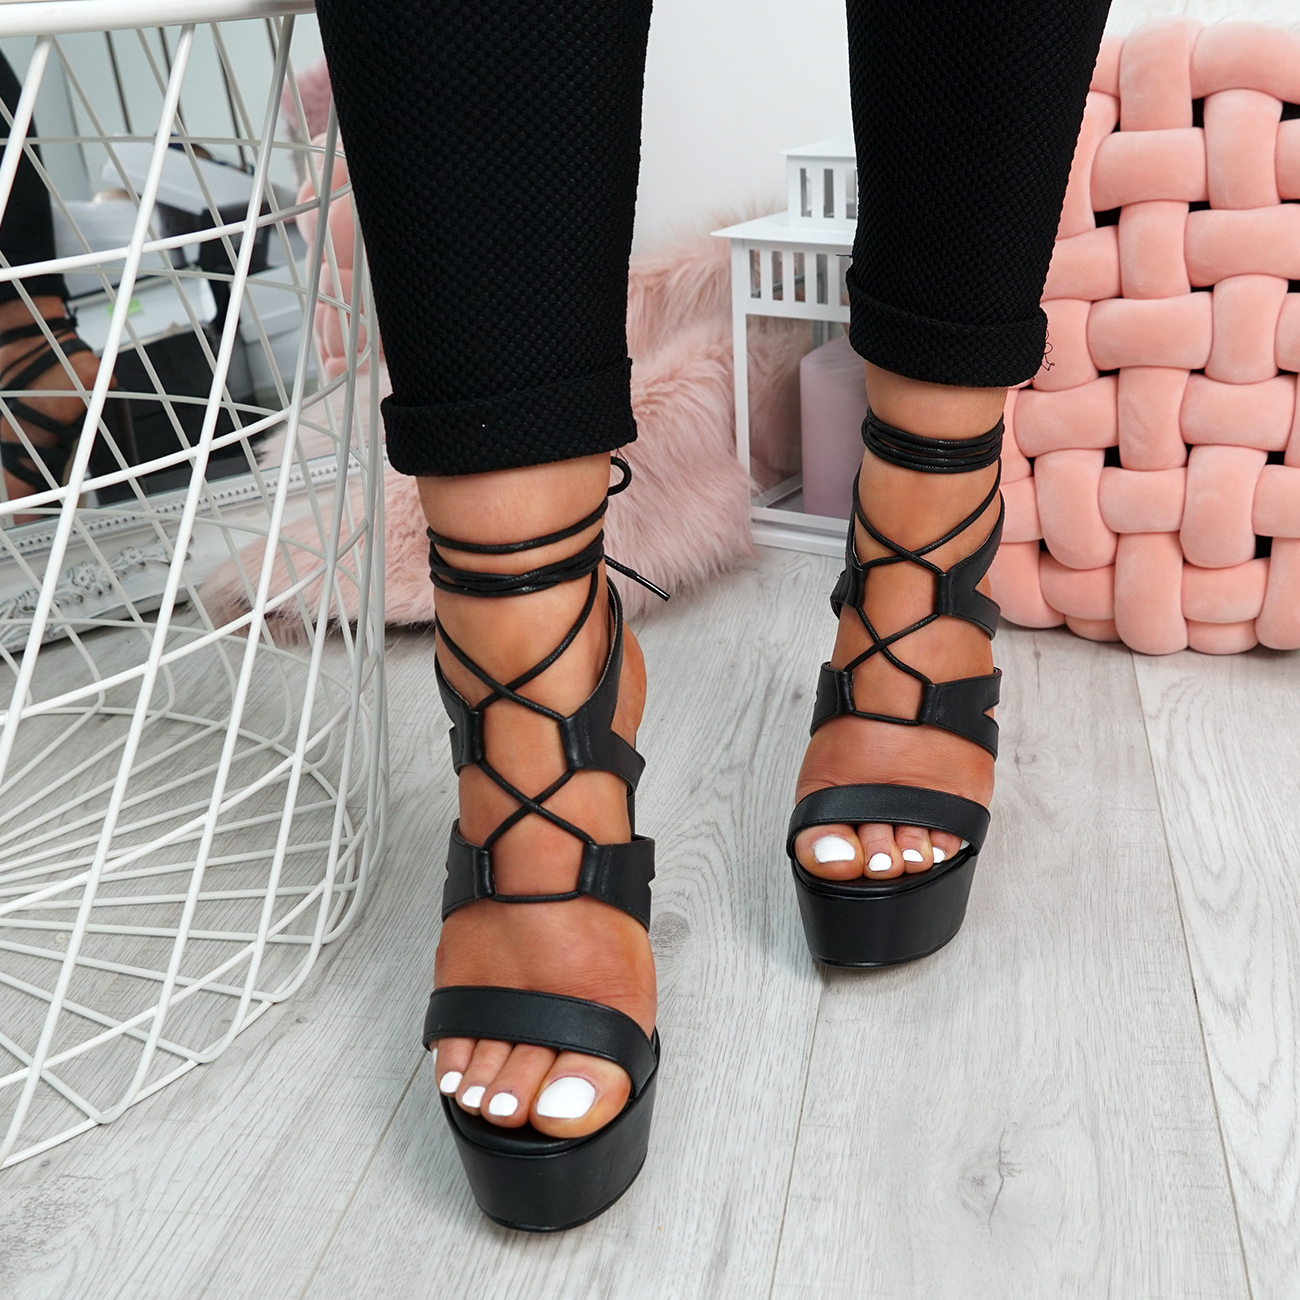 Ladies-Cross-Lace-High-Block-Heel-Sandals-Womens-Platforms-Peep-Toe-Shoes-Size thumbnail 5